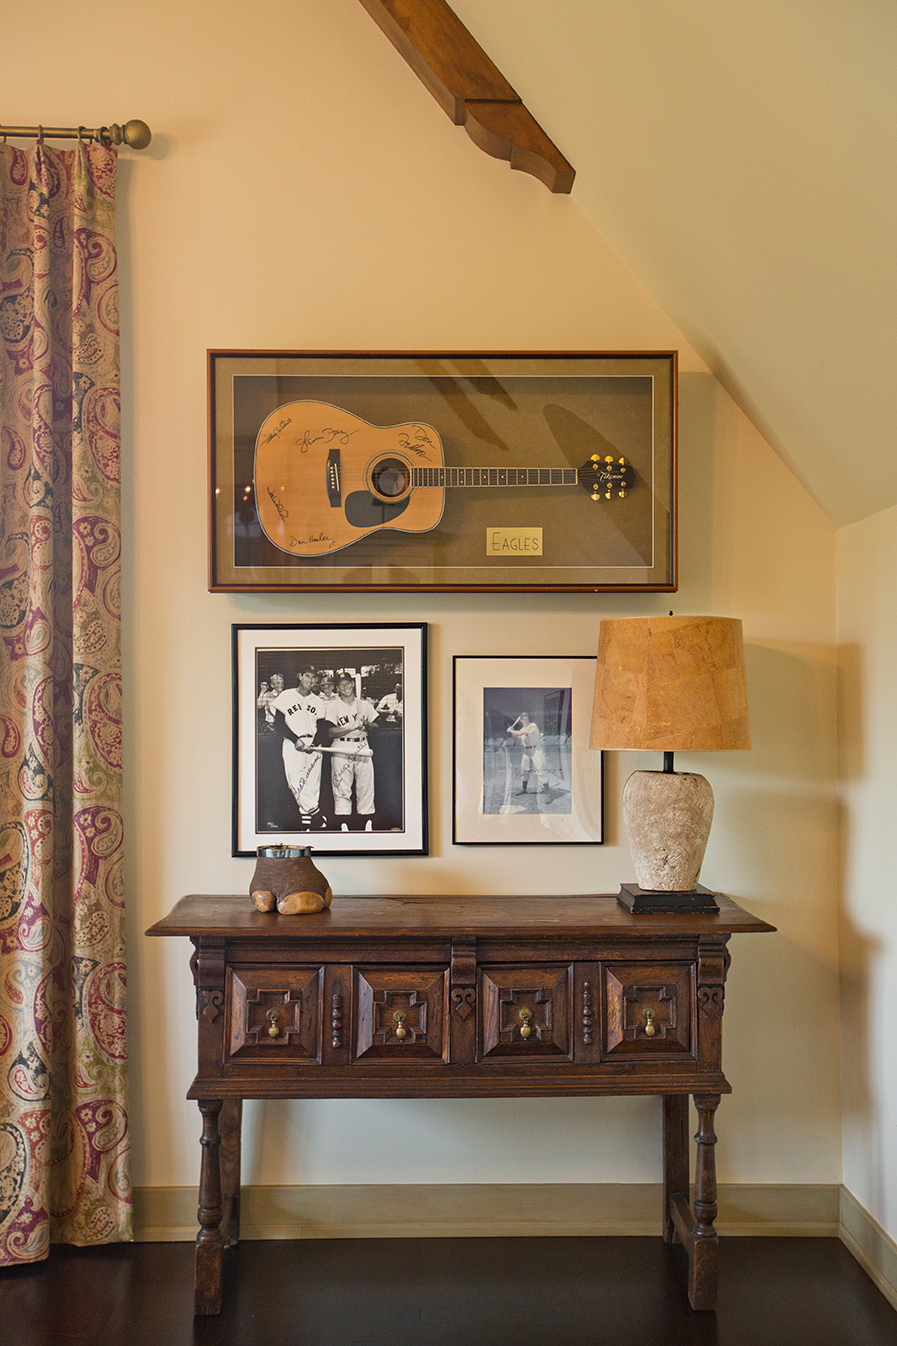 We are always delighted to incorporate any client's collection into an artful décor. #RockOn #BatterUp #HotelCalifornia